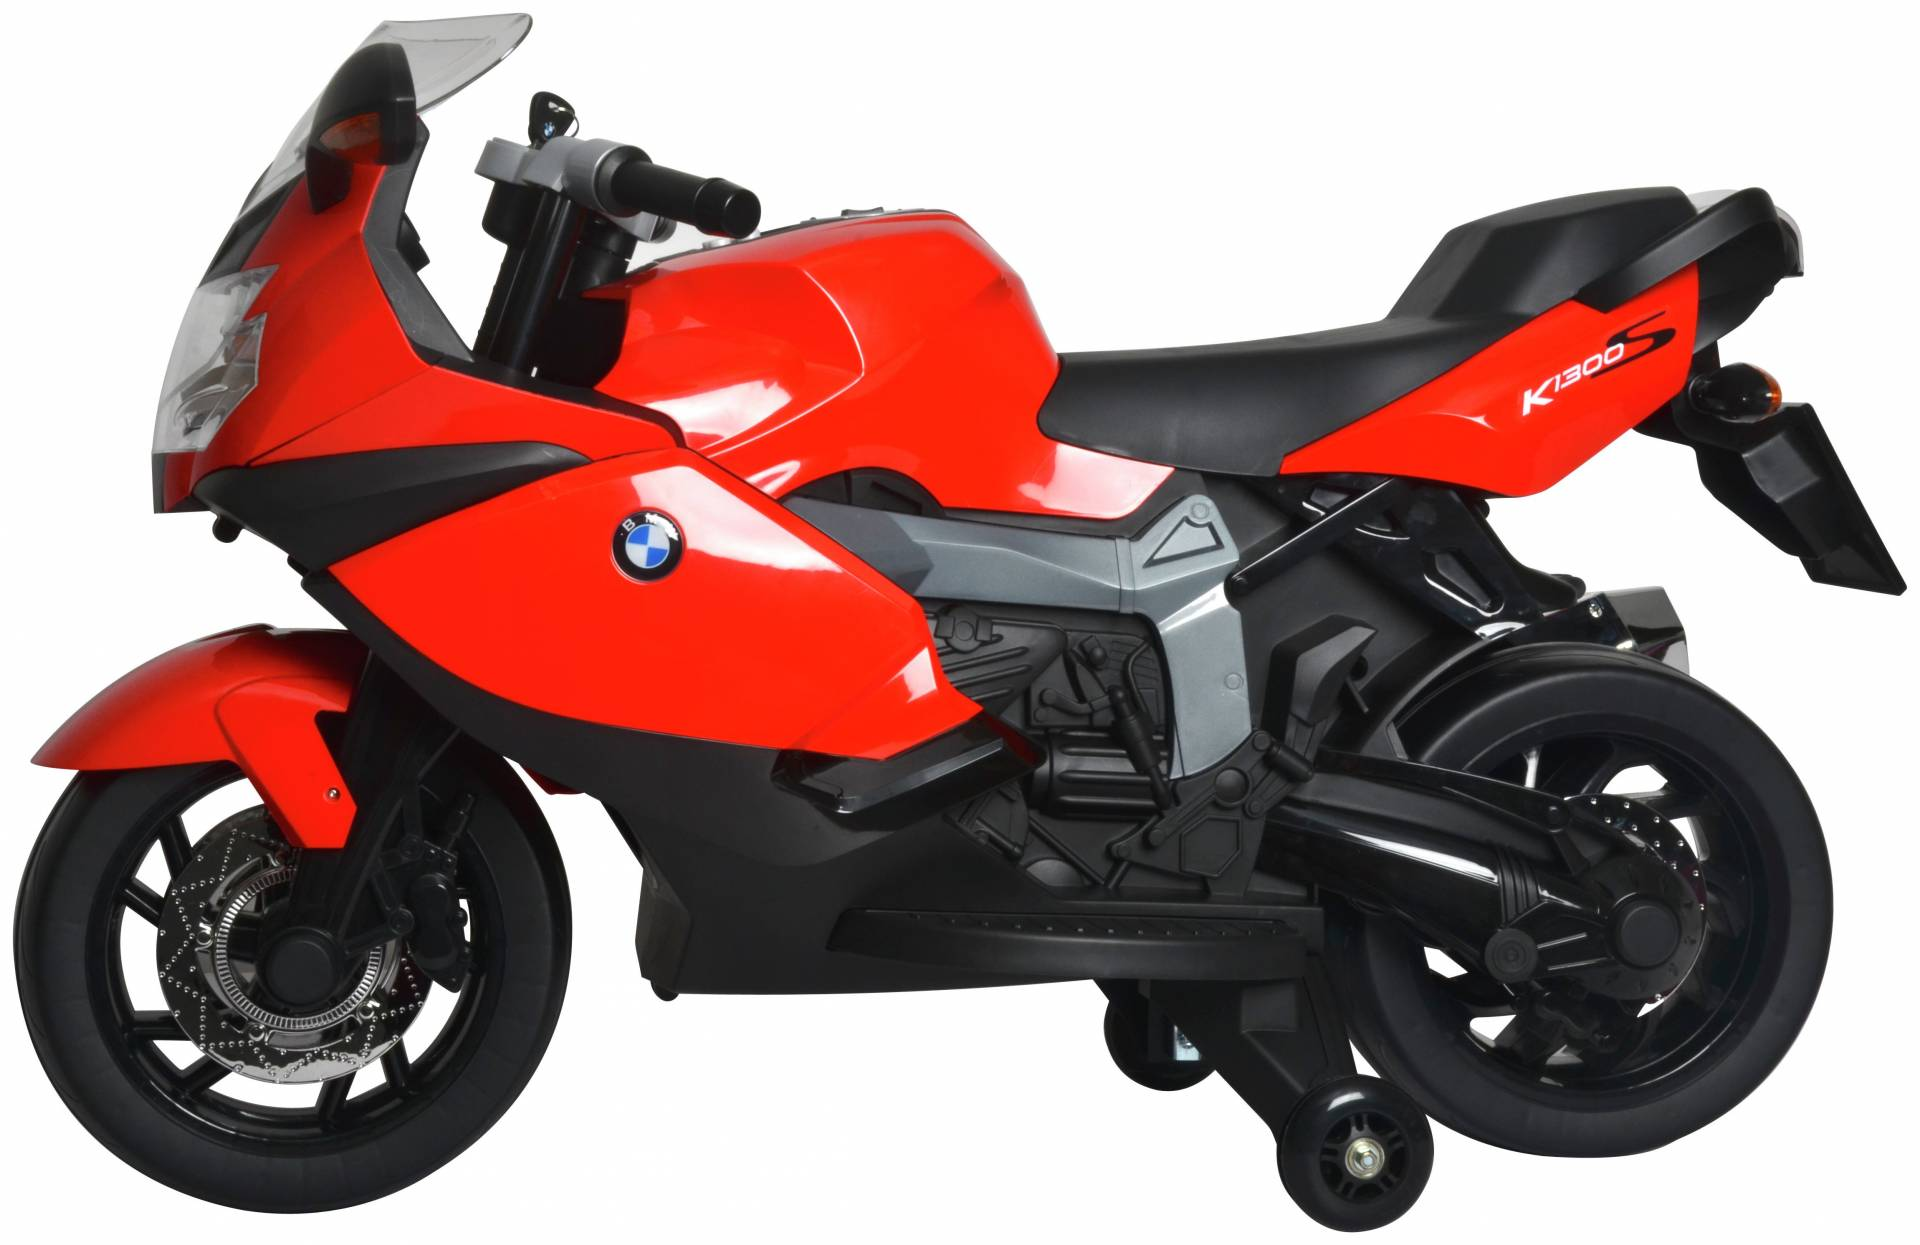 BMW Motorcycle Electric Ride toys for kids black friday deals